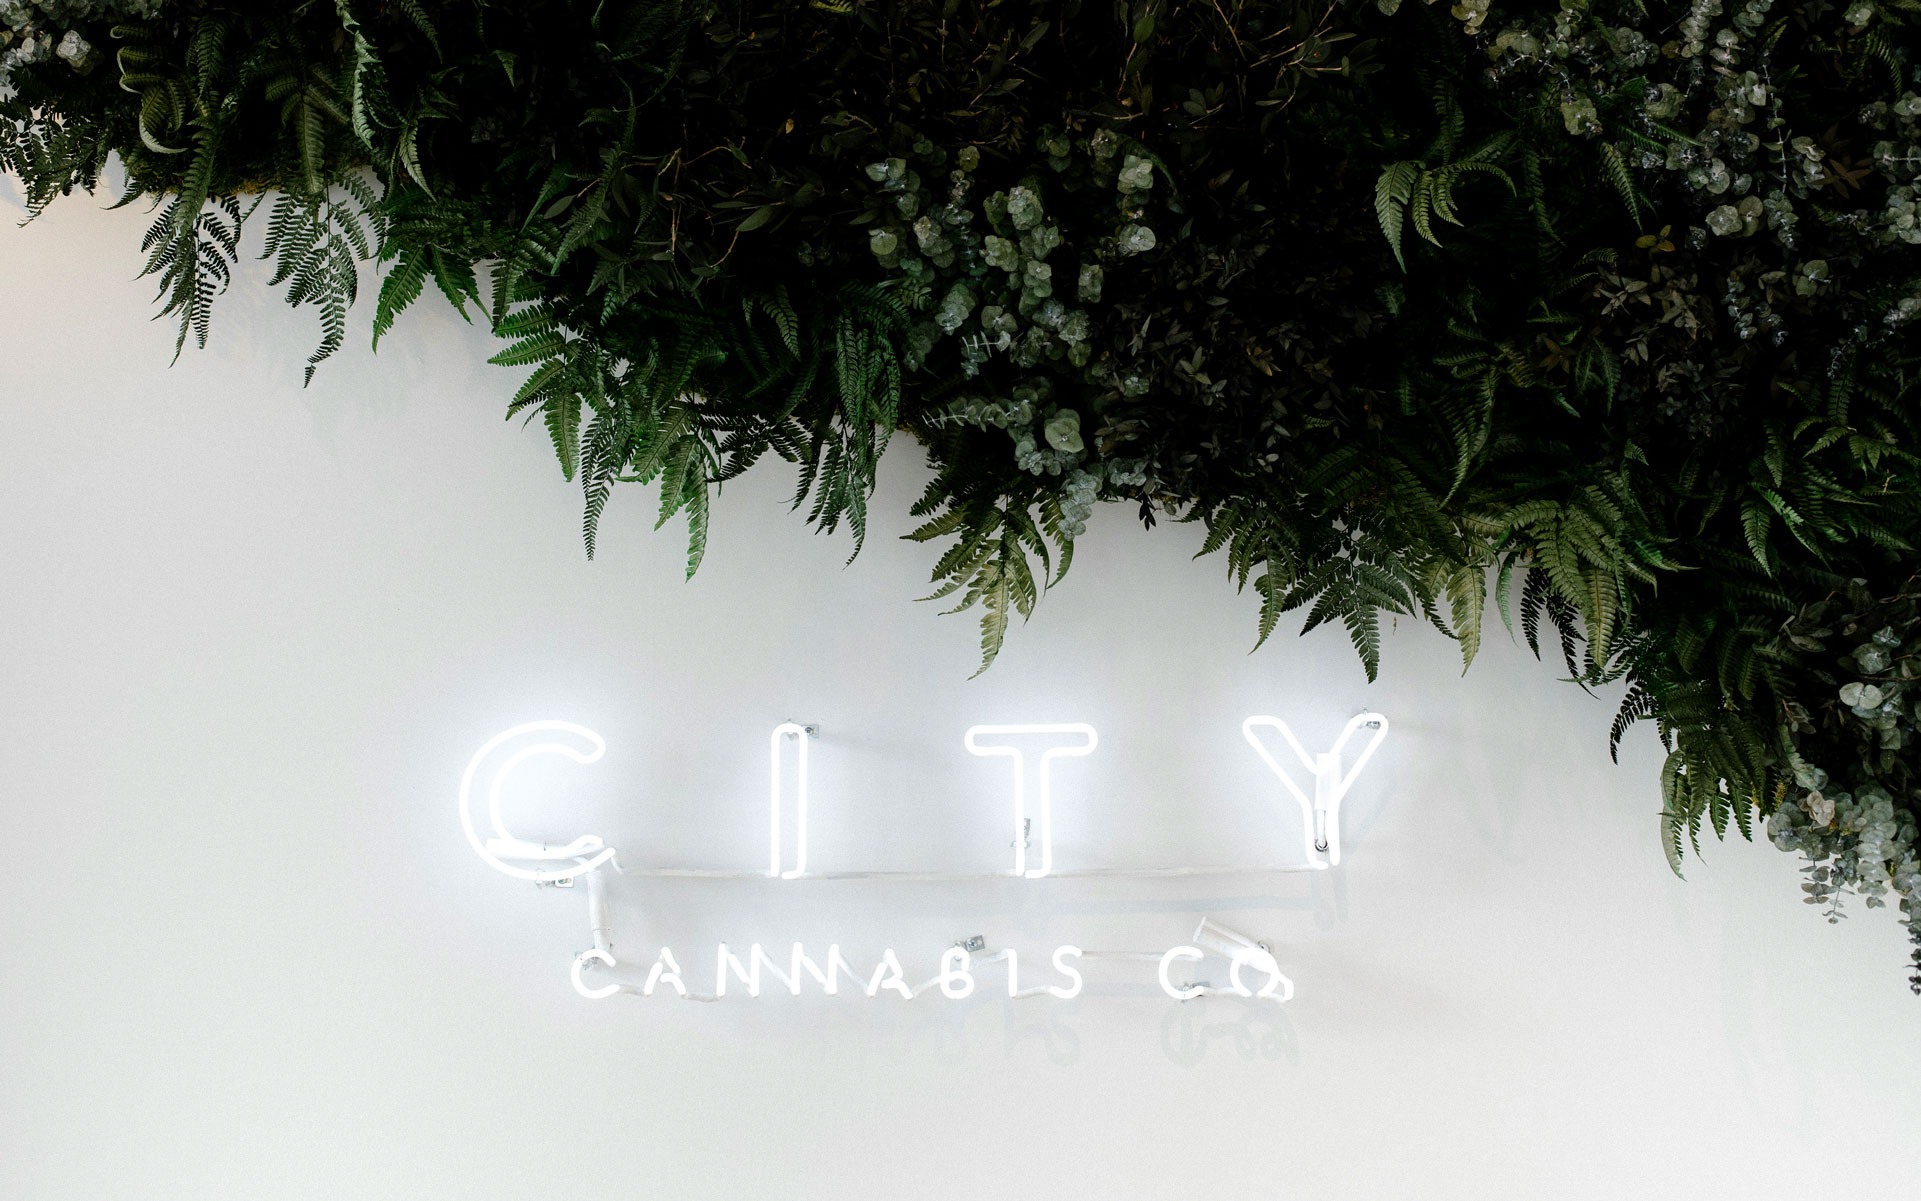 Retail Guide: City Cannabis Co., Fraser Street, Vancouver